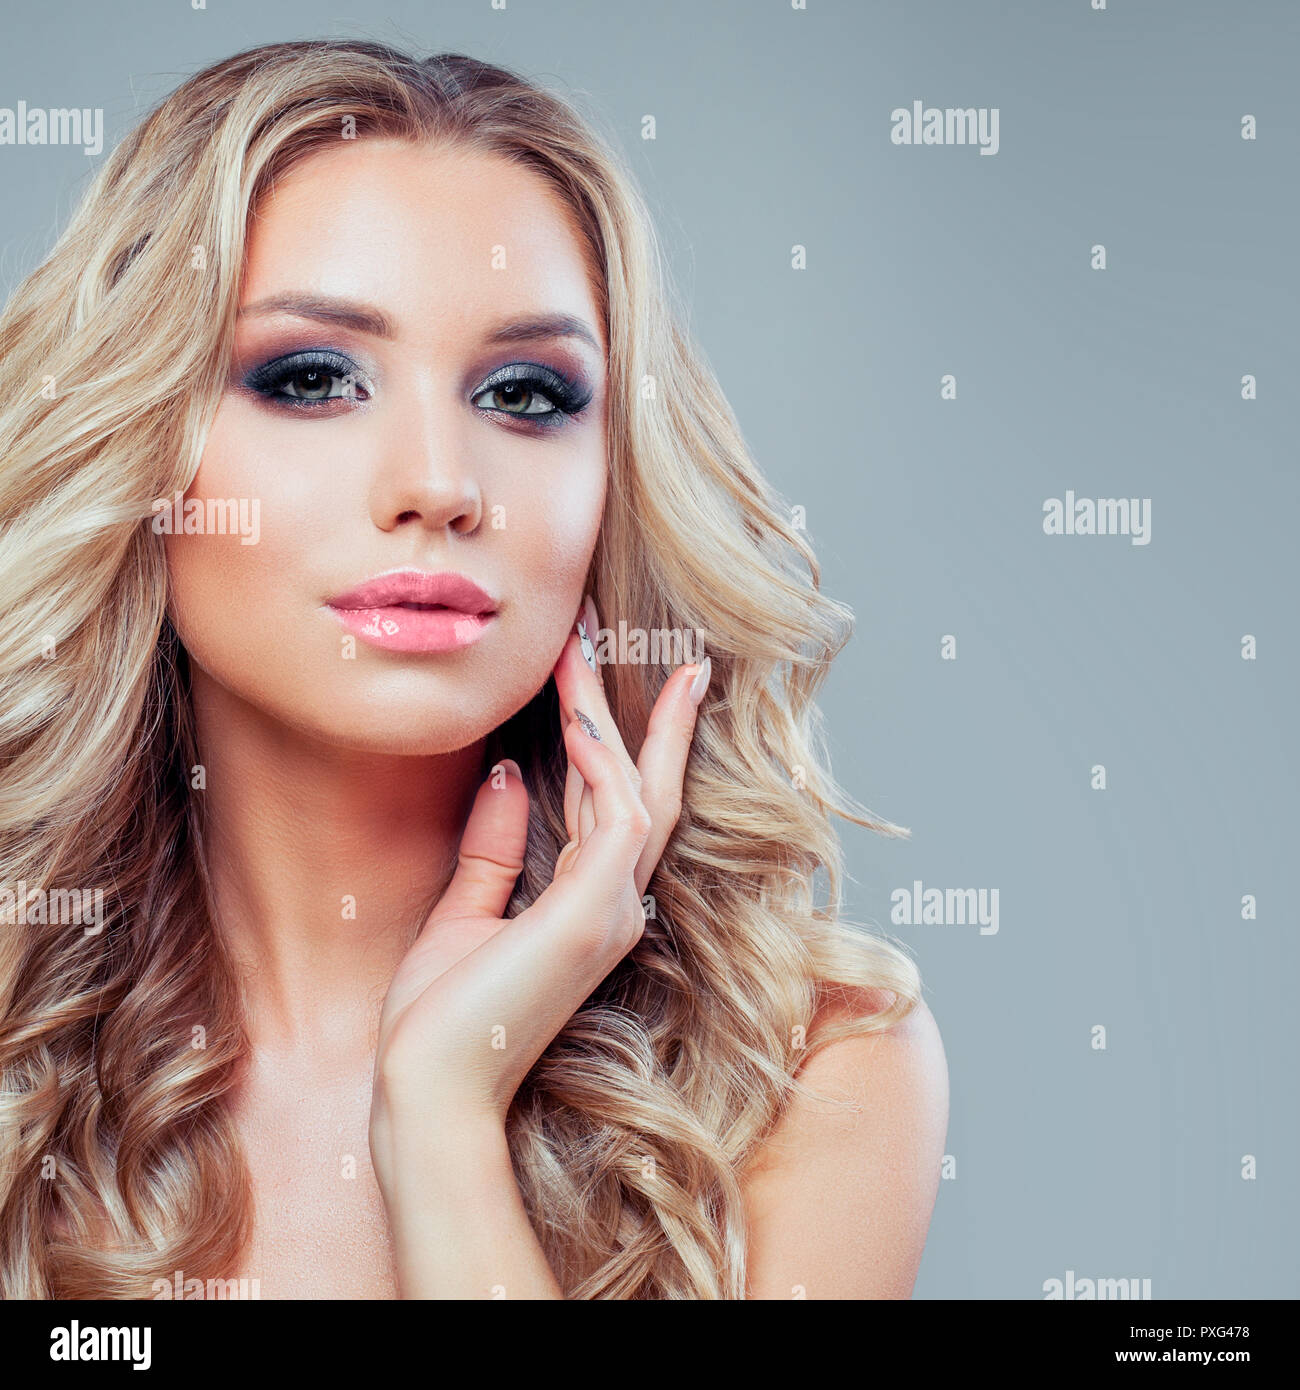 Beautiful Blonde Woman With Makeup And Wavy Hairstyle Stock